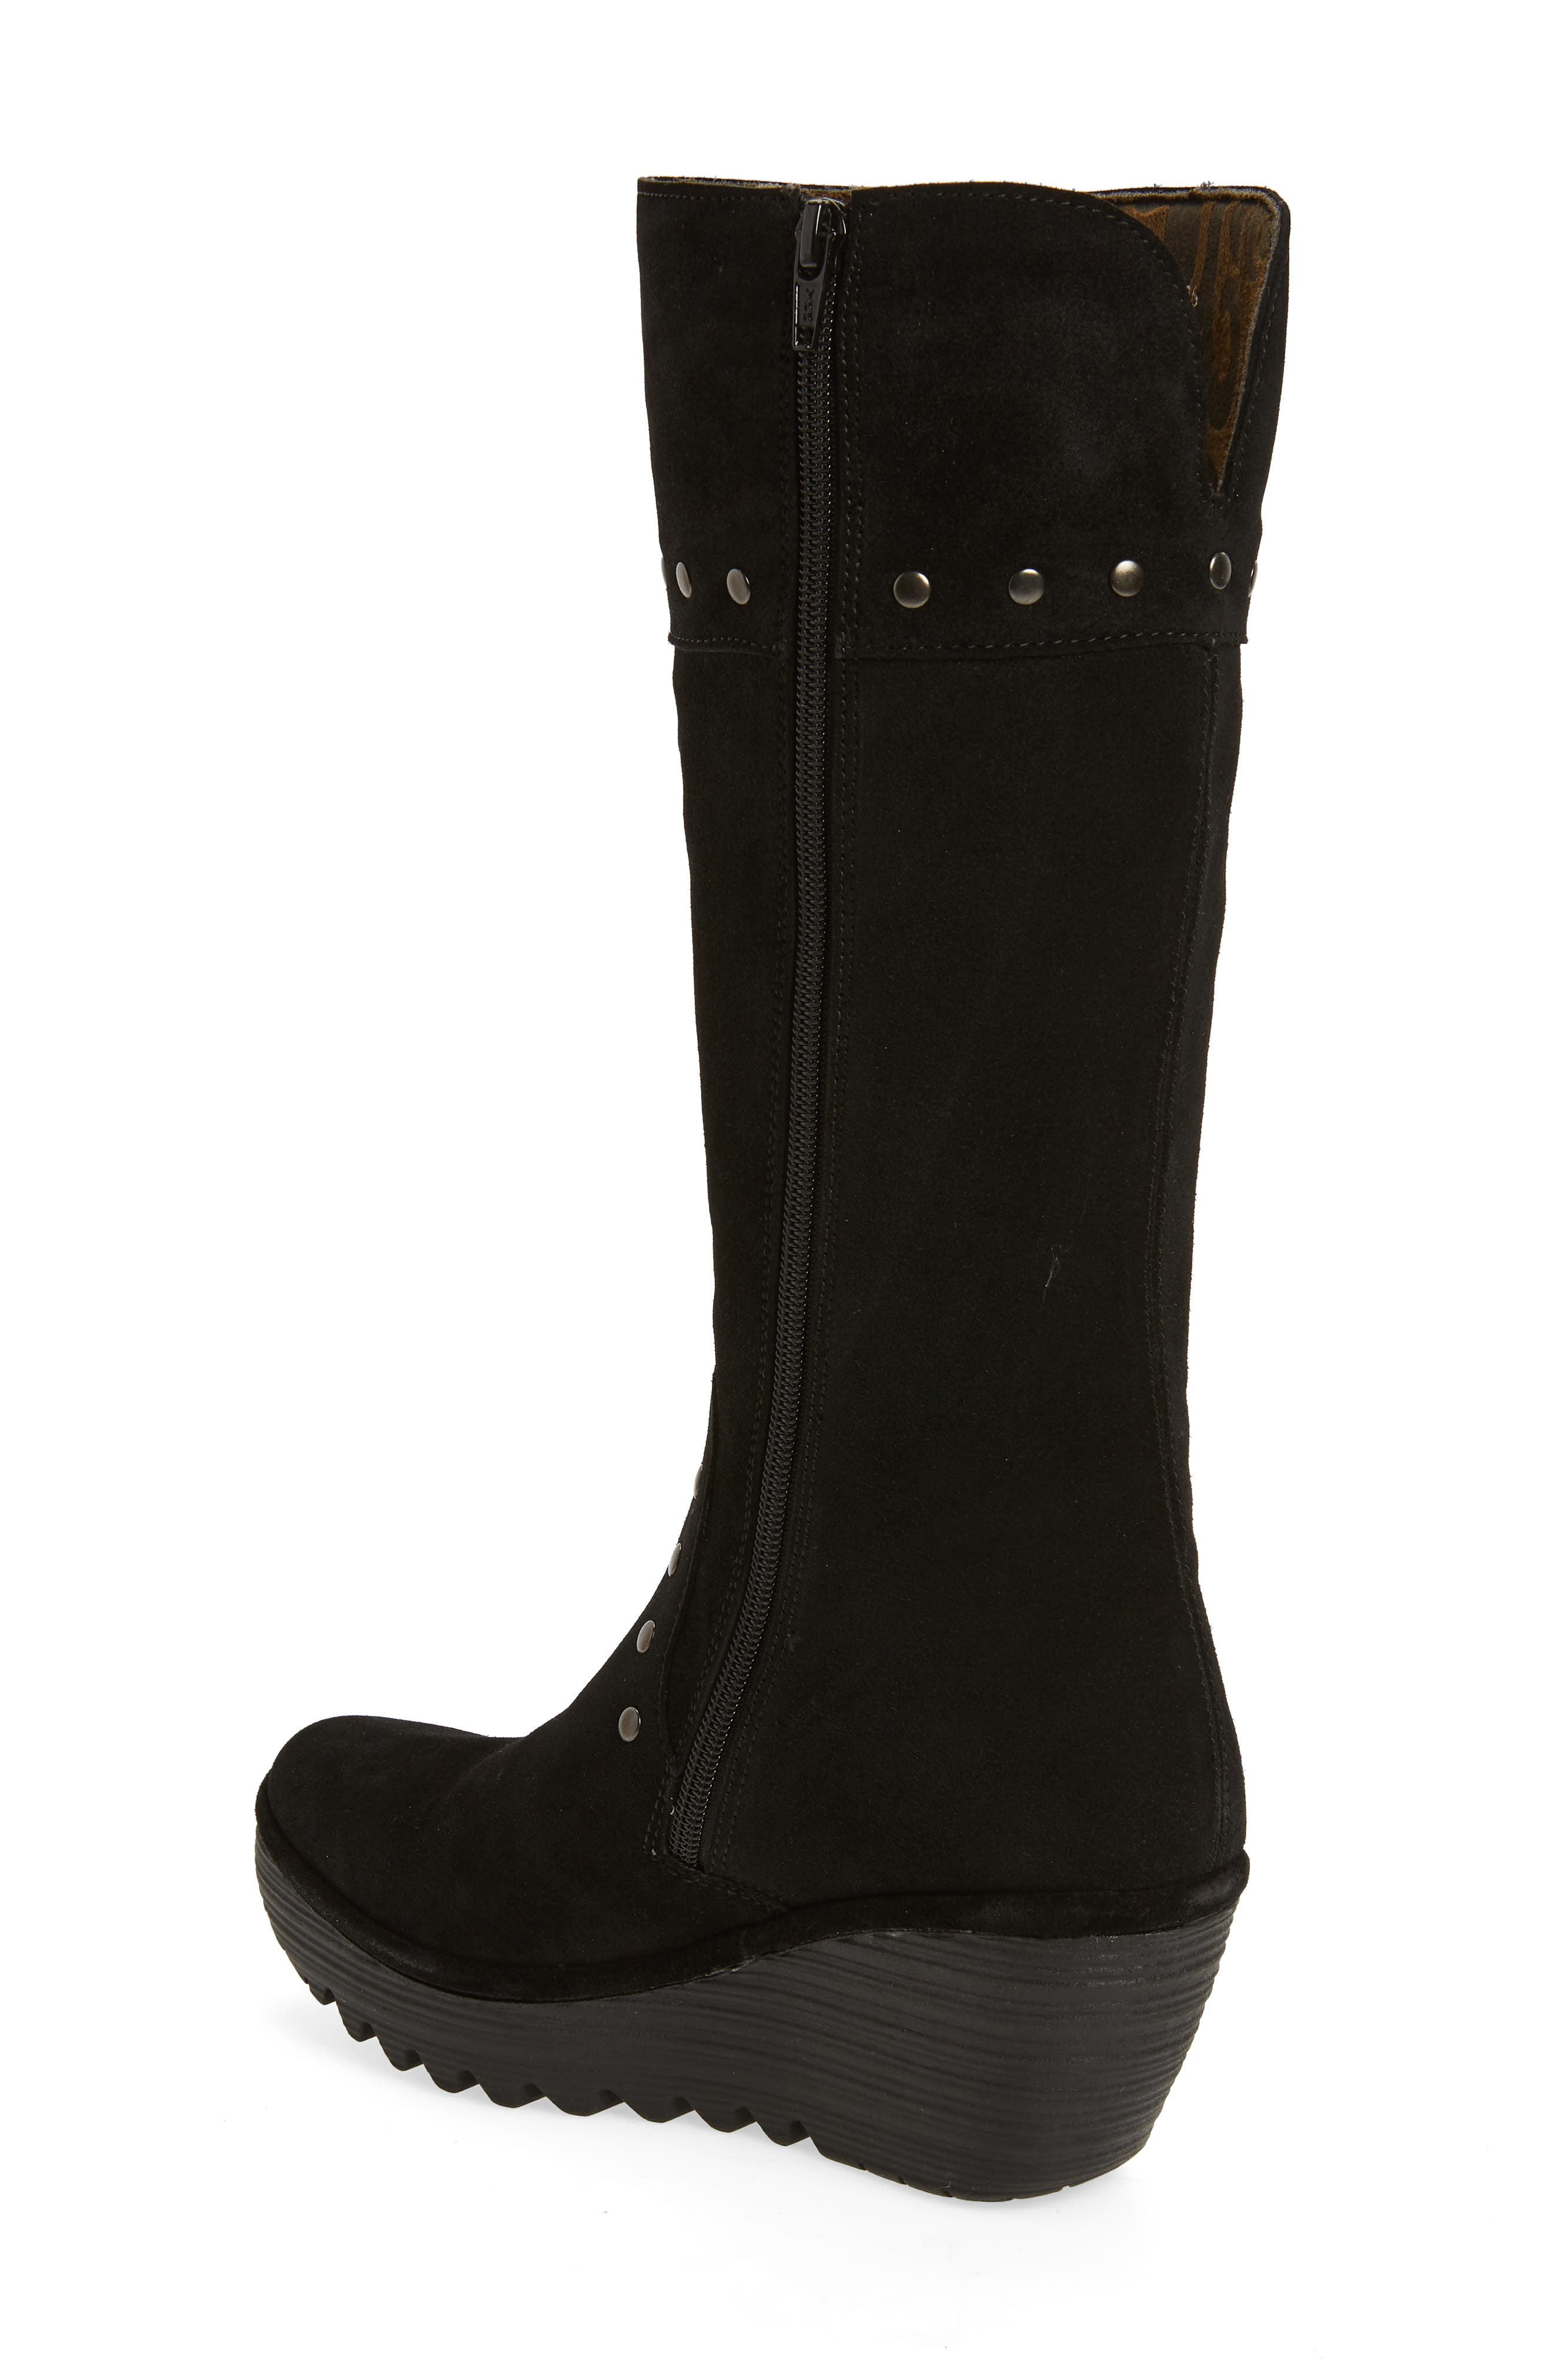 Yota Knee High Boot,                             Alternate thumbnail 2, color,                             BLACK OIL SUEDE